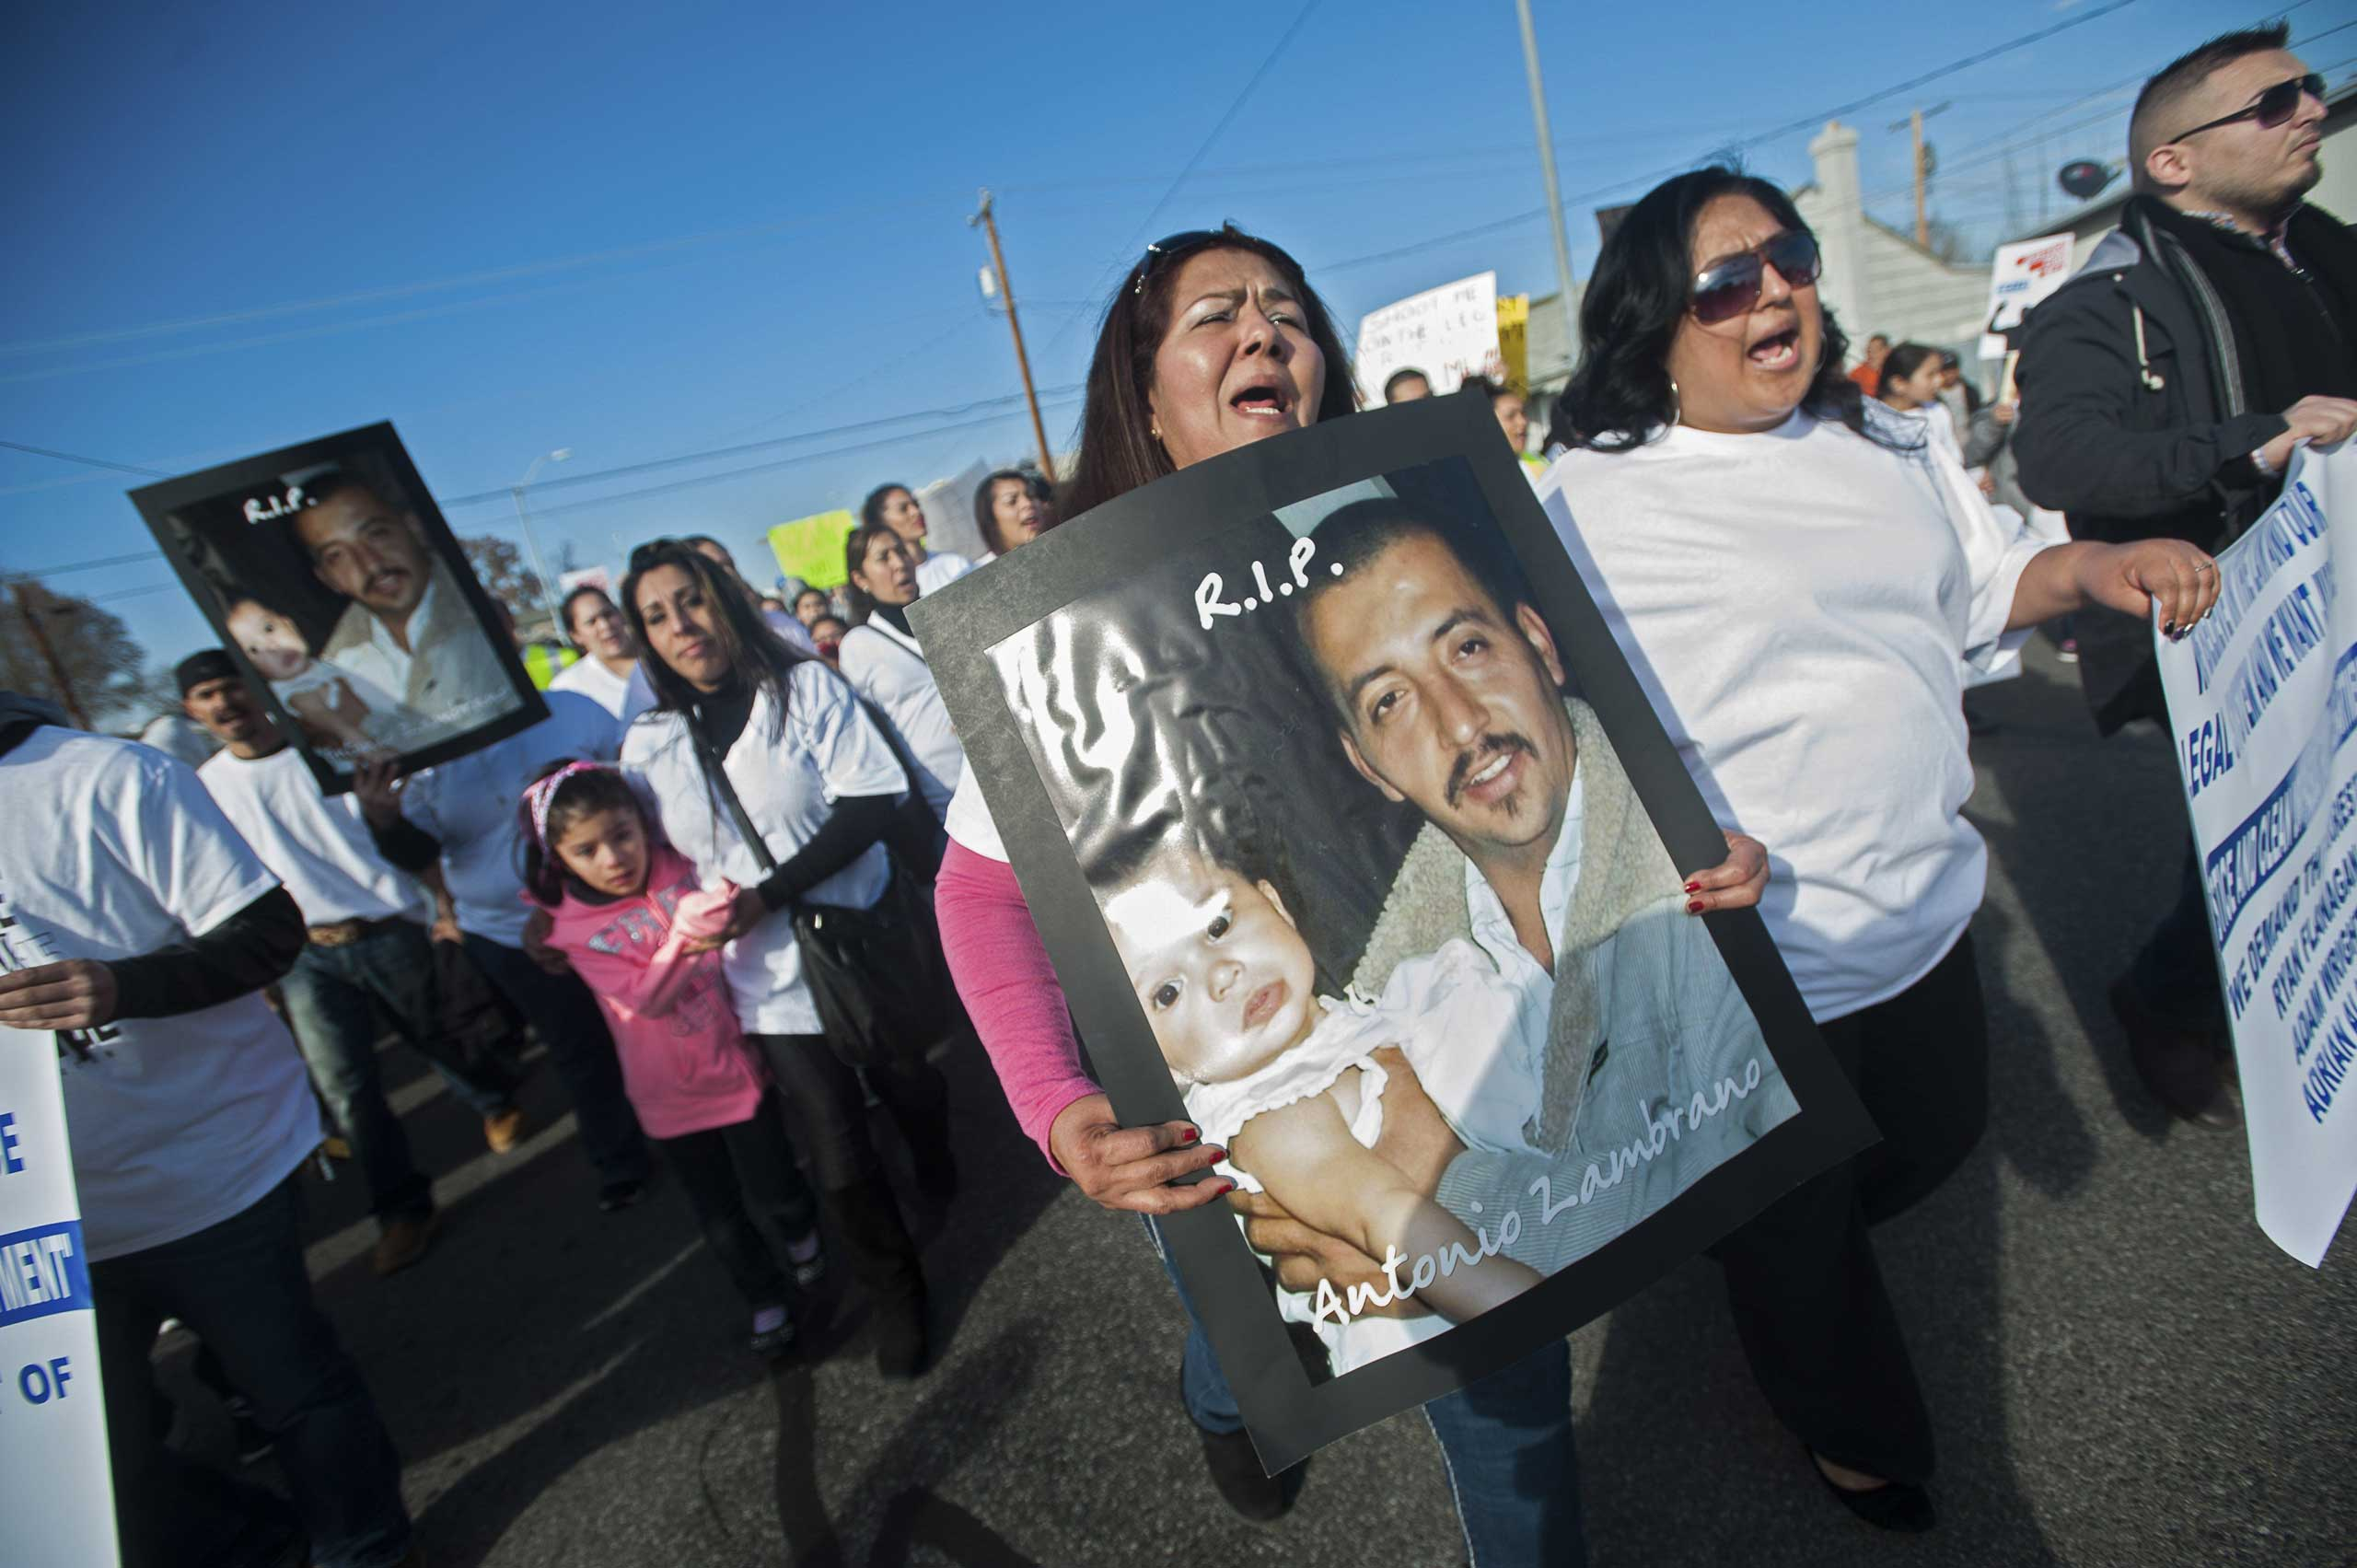 Marchers carry posters of Antonio Zambrano-Montes during a protest over the police killing of the Mexican-born apple picker, in Pasco, Wash., Feb. 14, 2015.